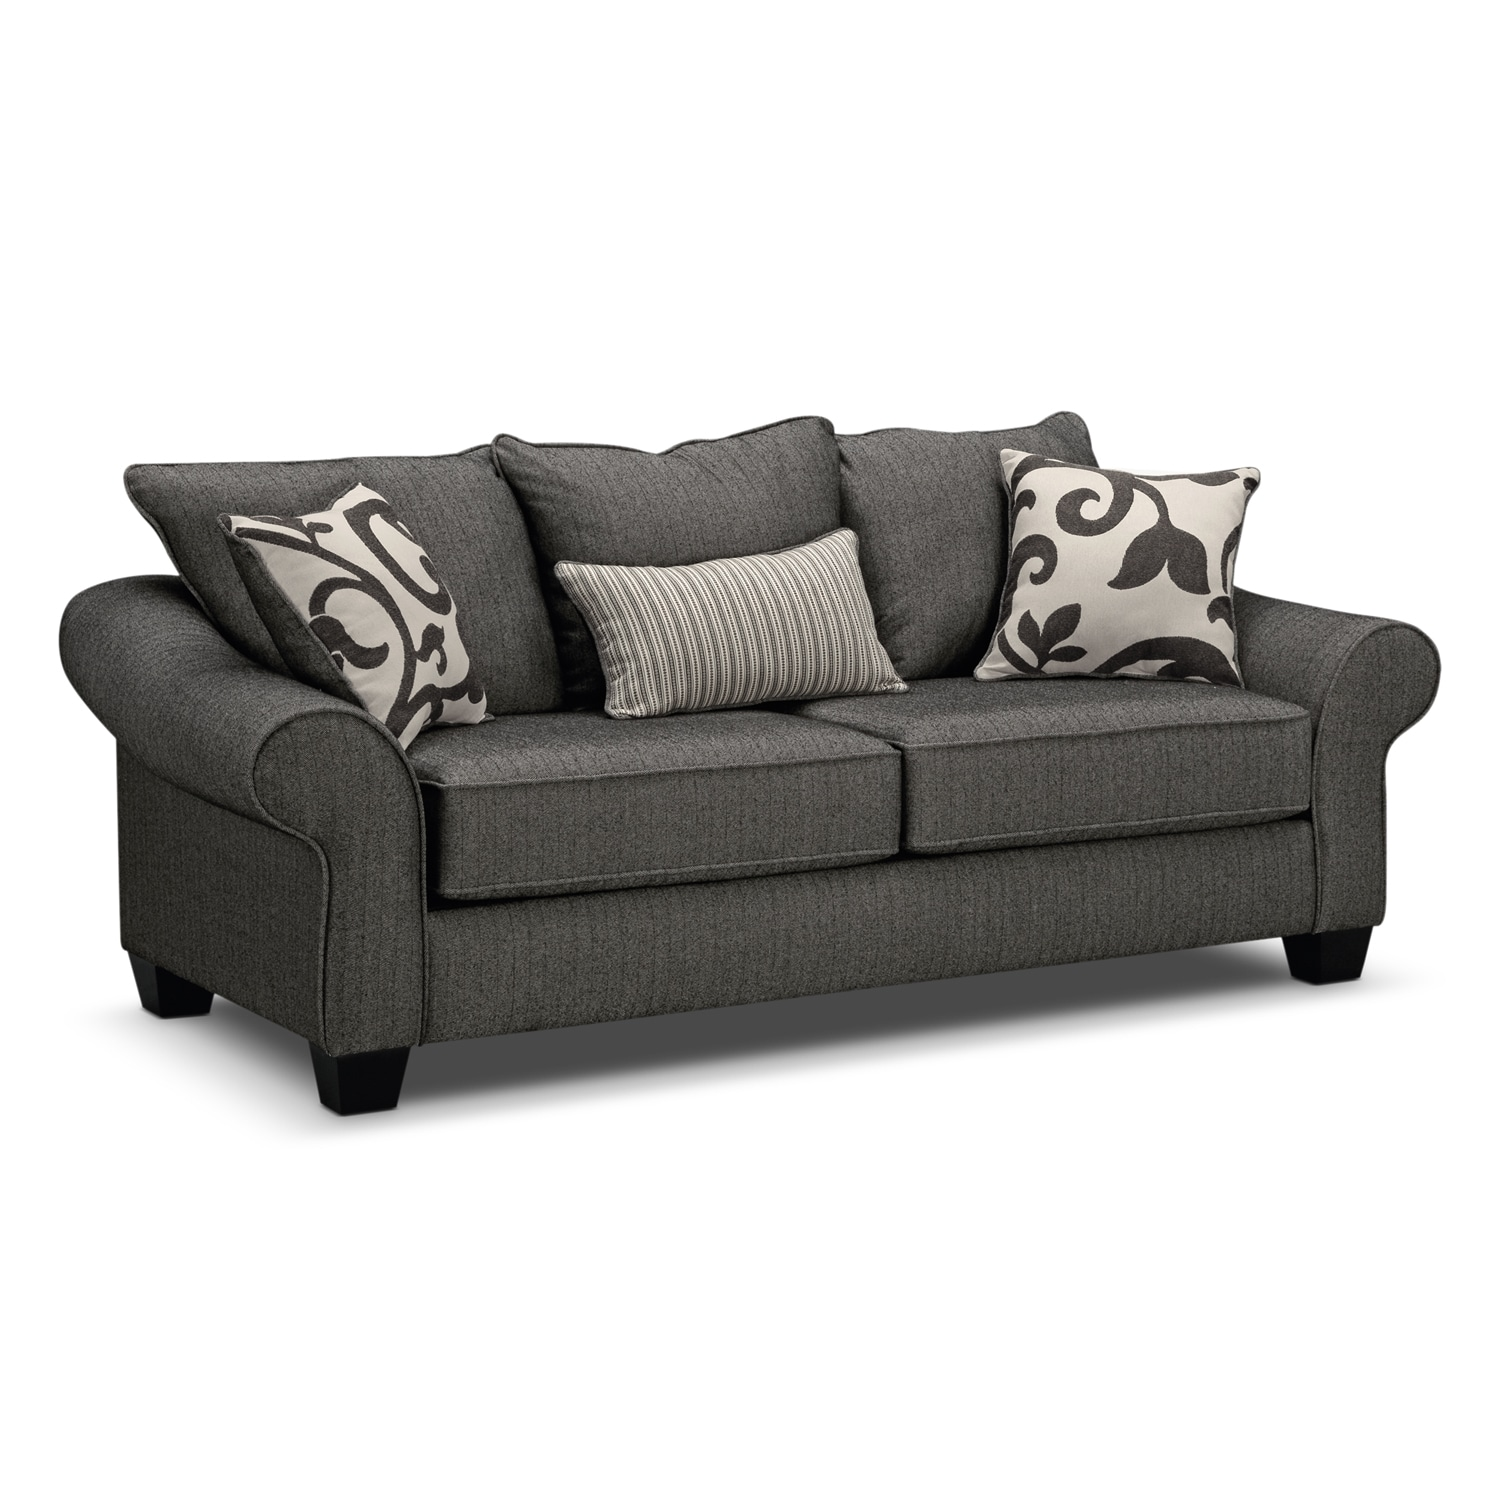 Colette Full Memory Foam Sleeper Sofa - Gray